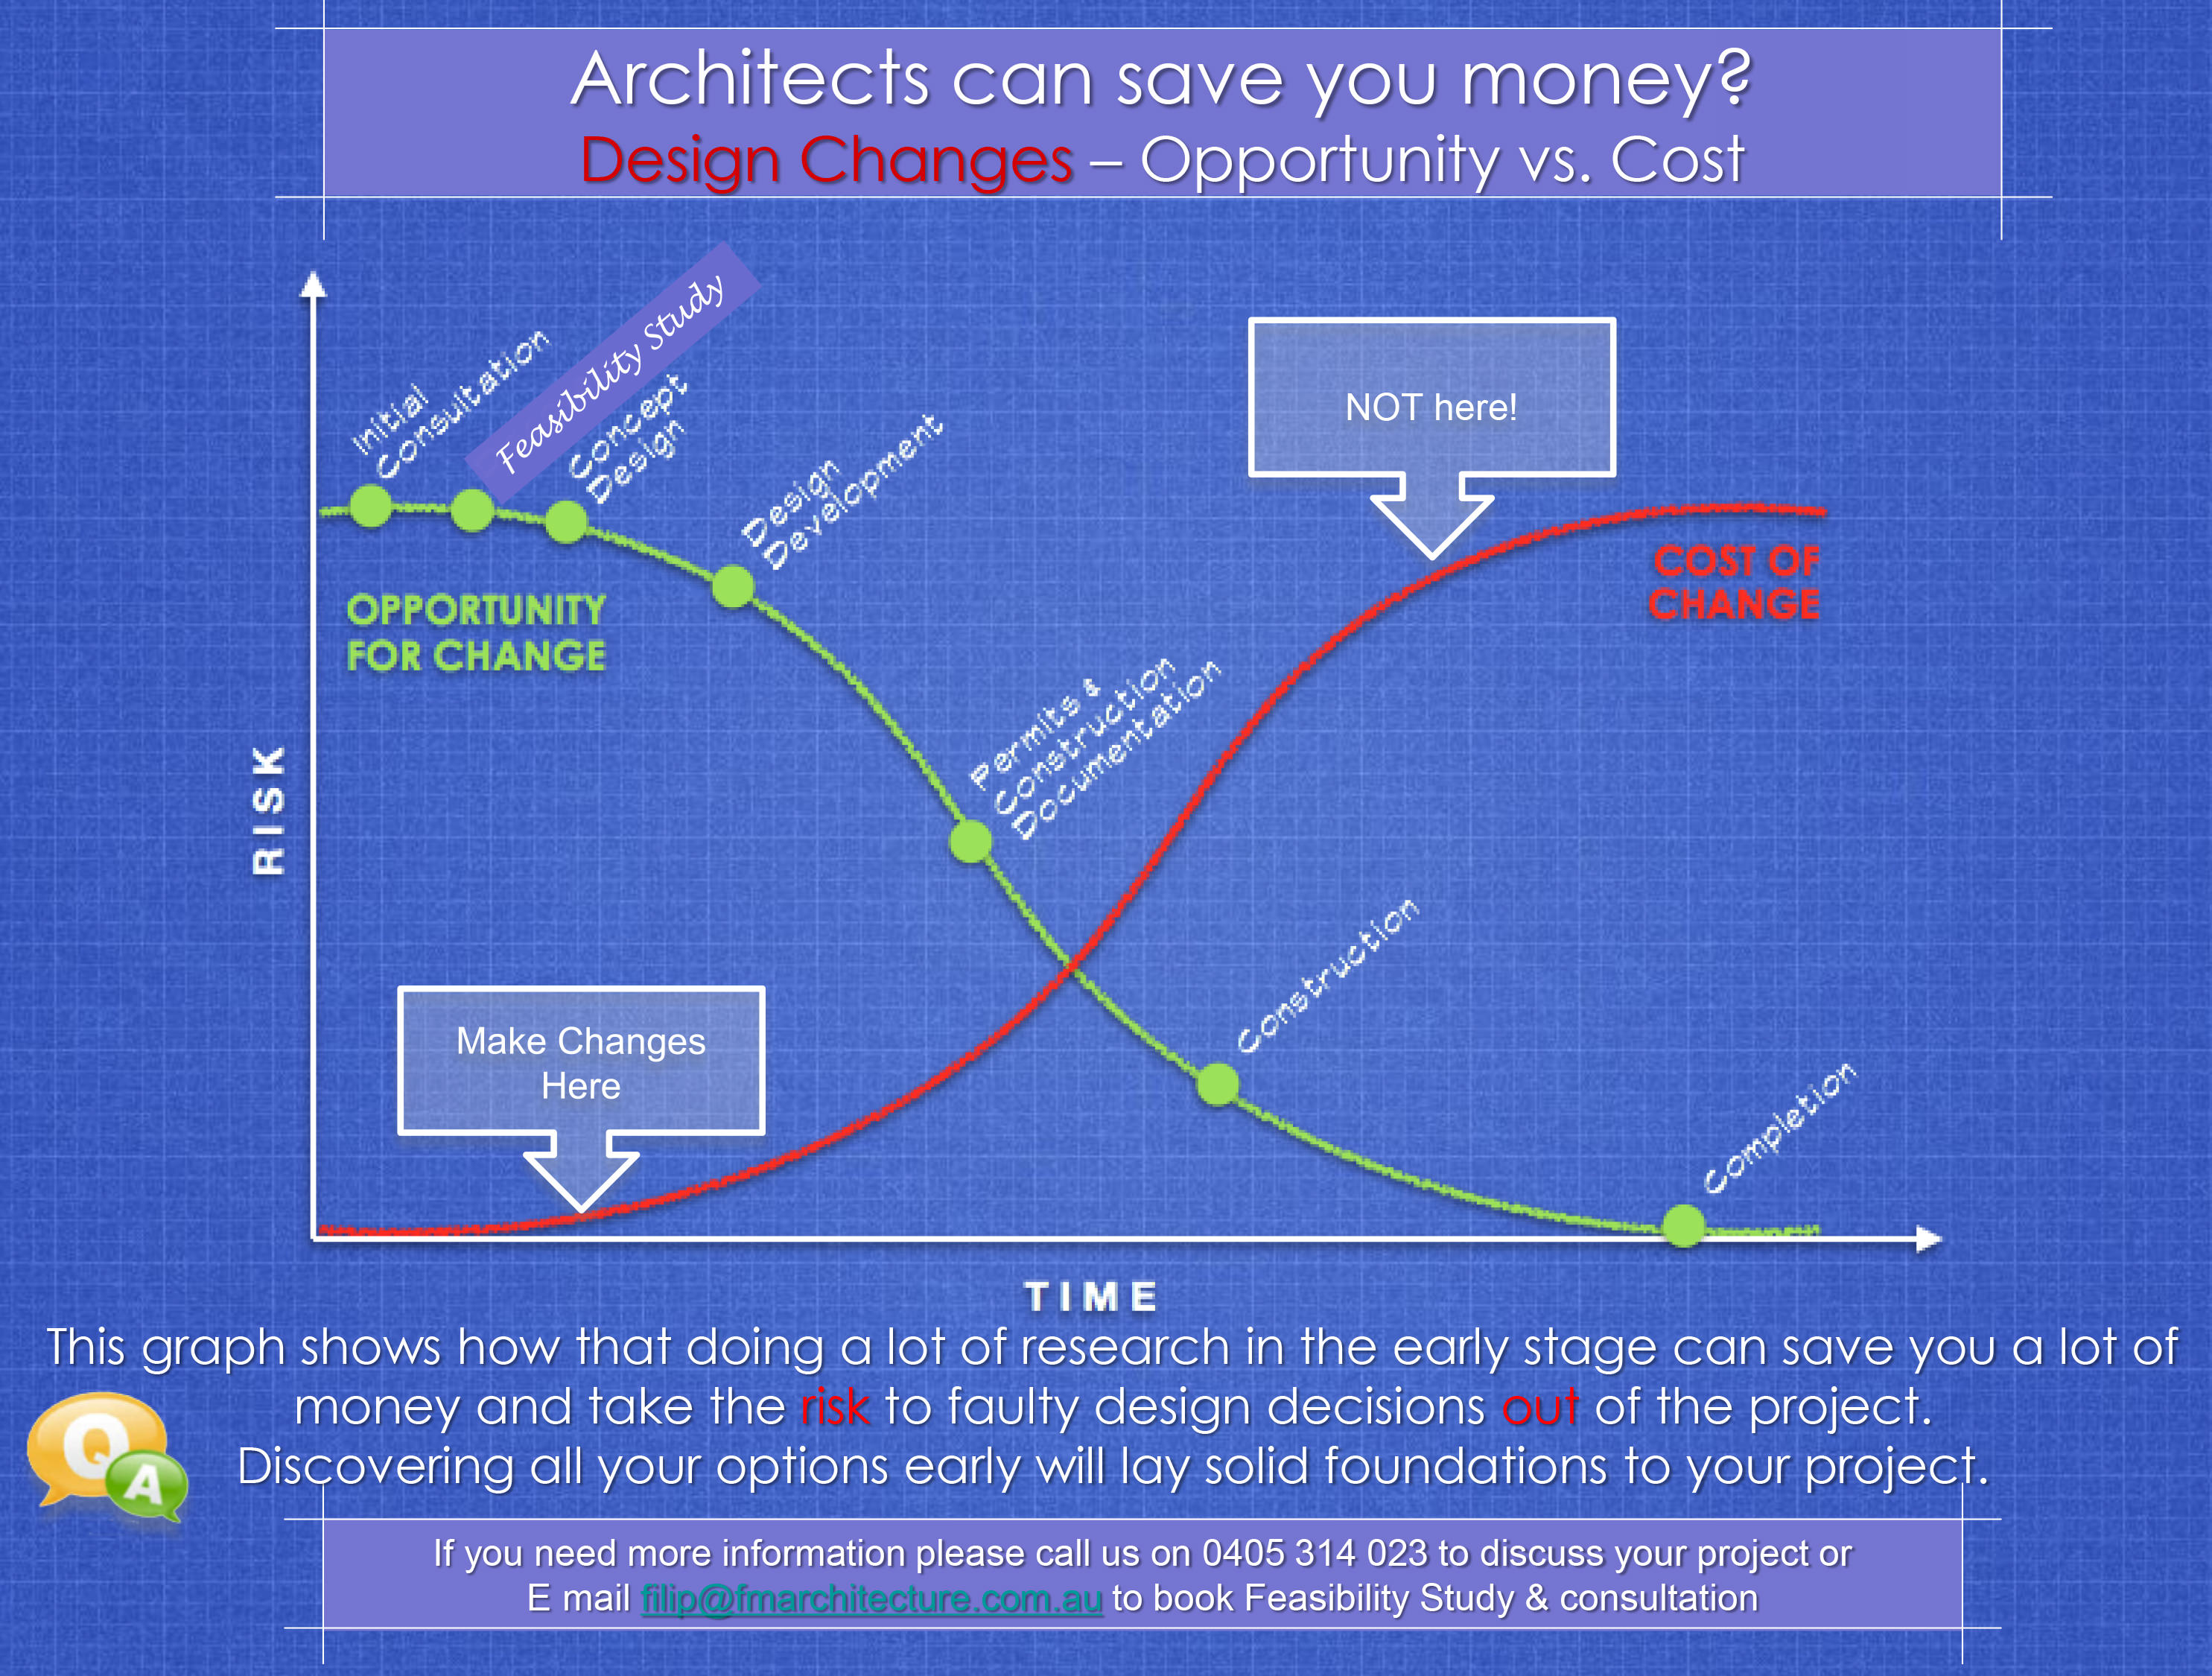 Architects can save you money?